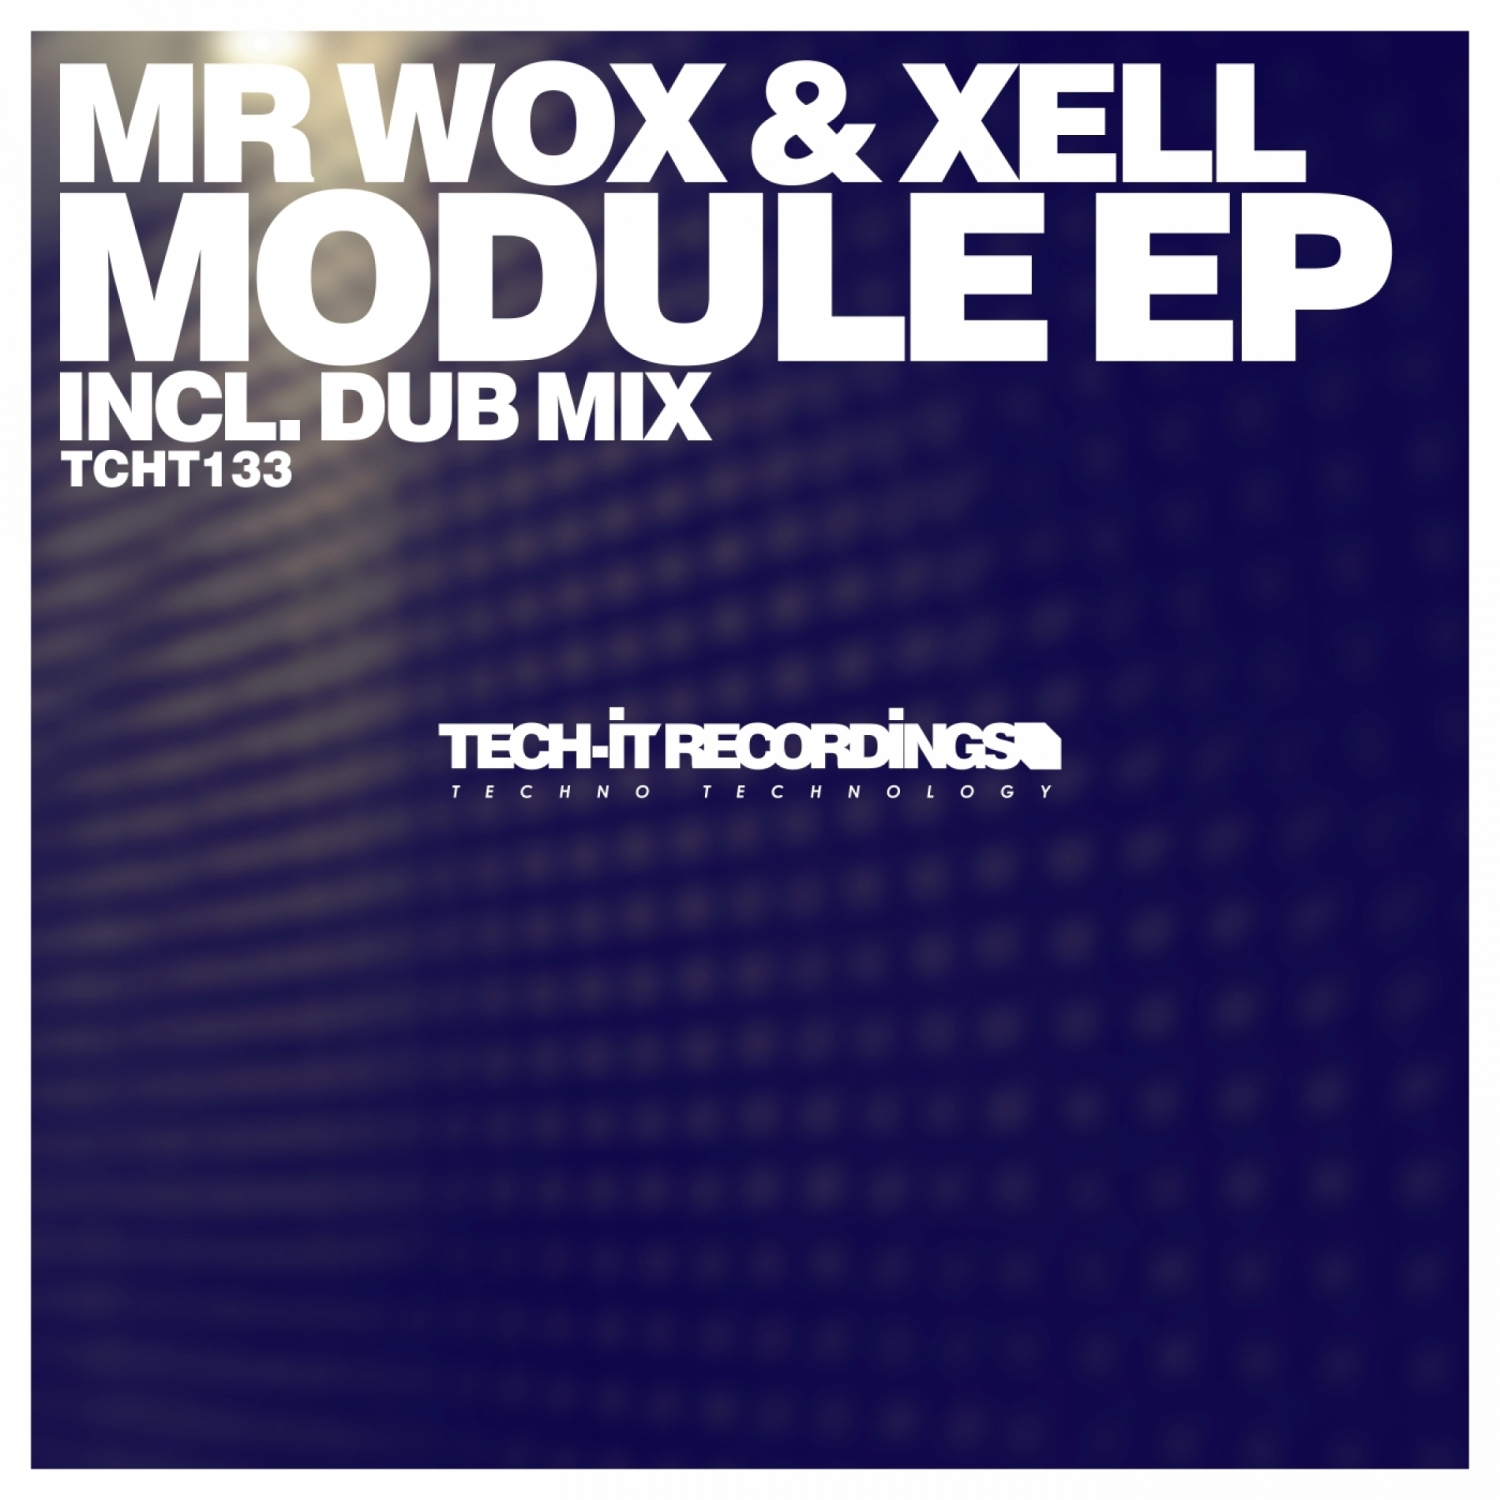 Mr Wox & Xell - Module (Dub Mix)